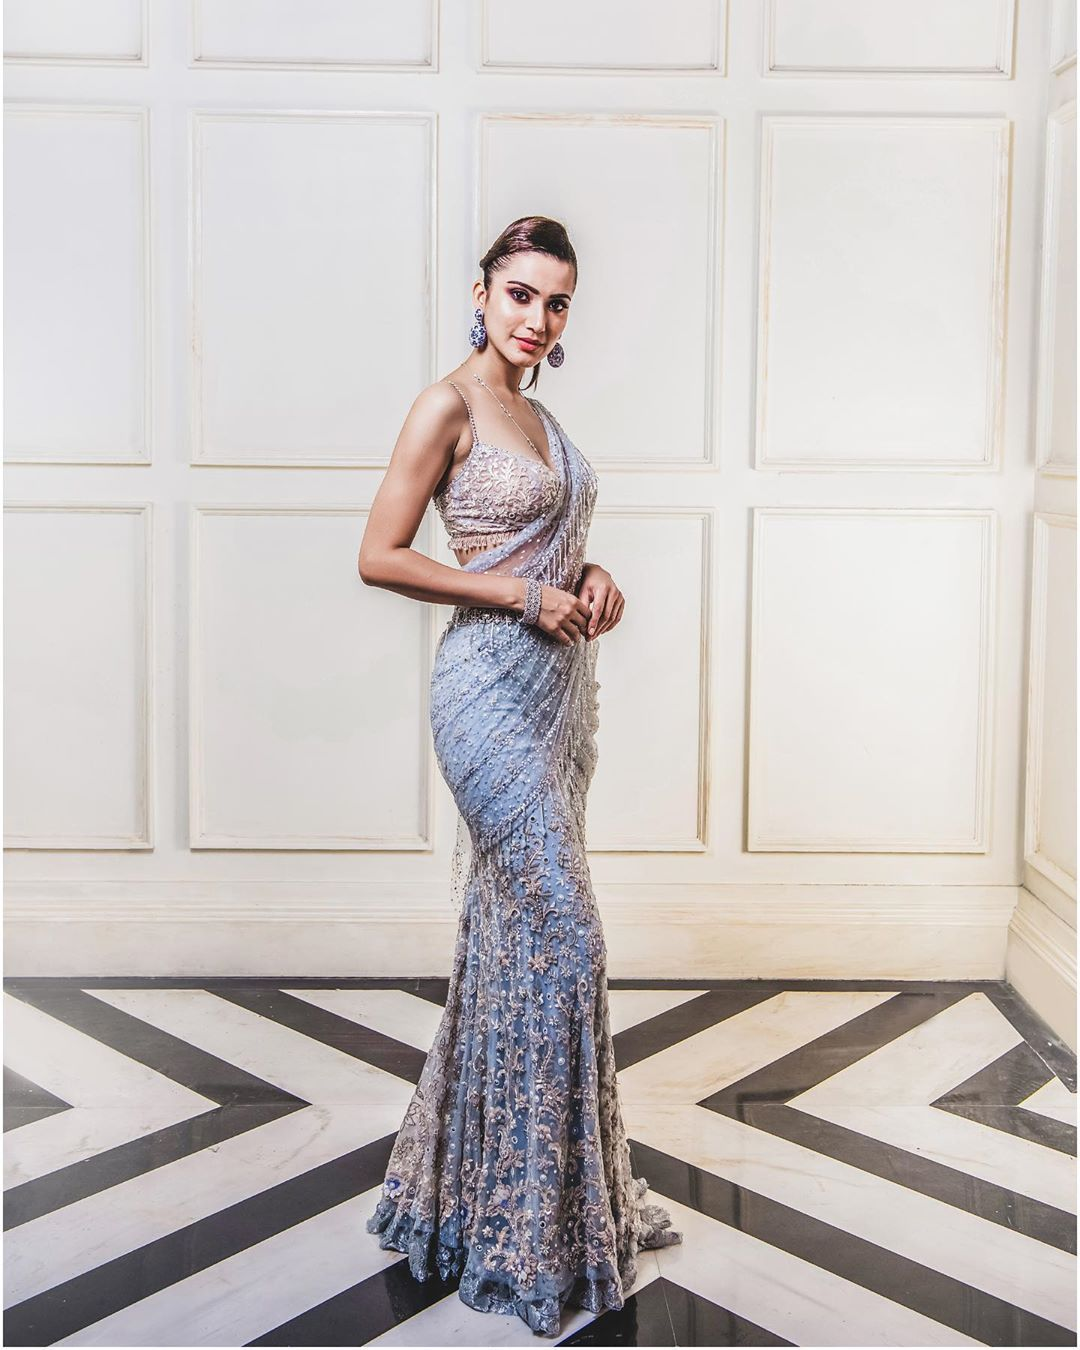 saree by tarun thiliani.jpg